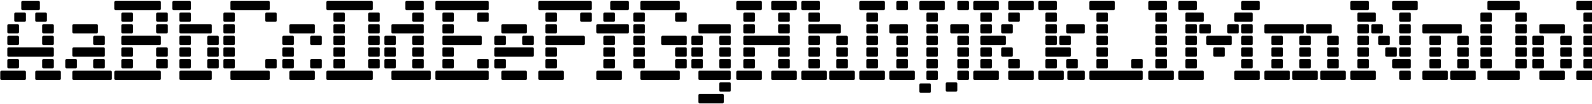 War Game Font